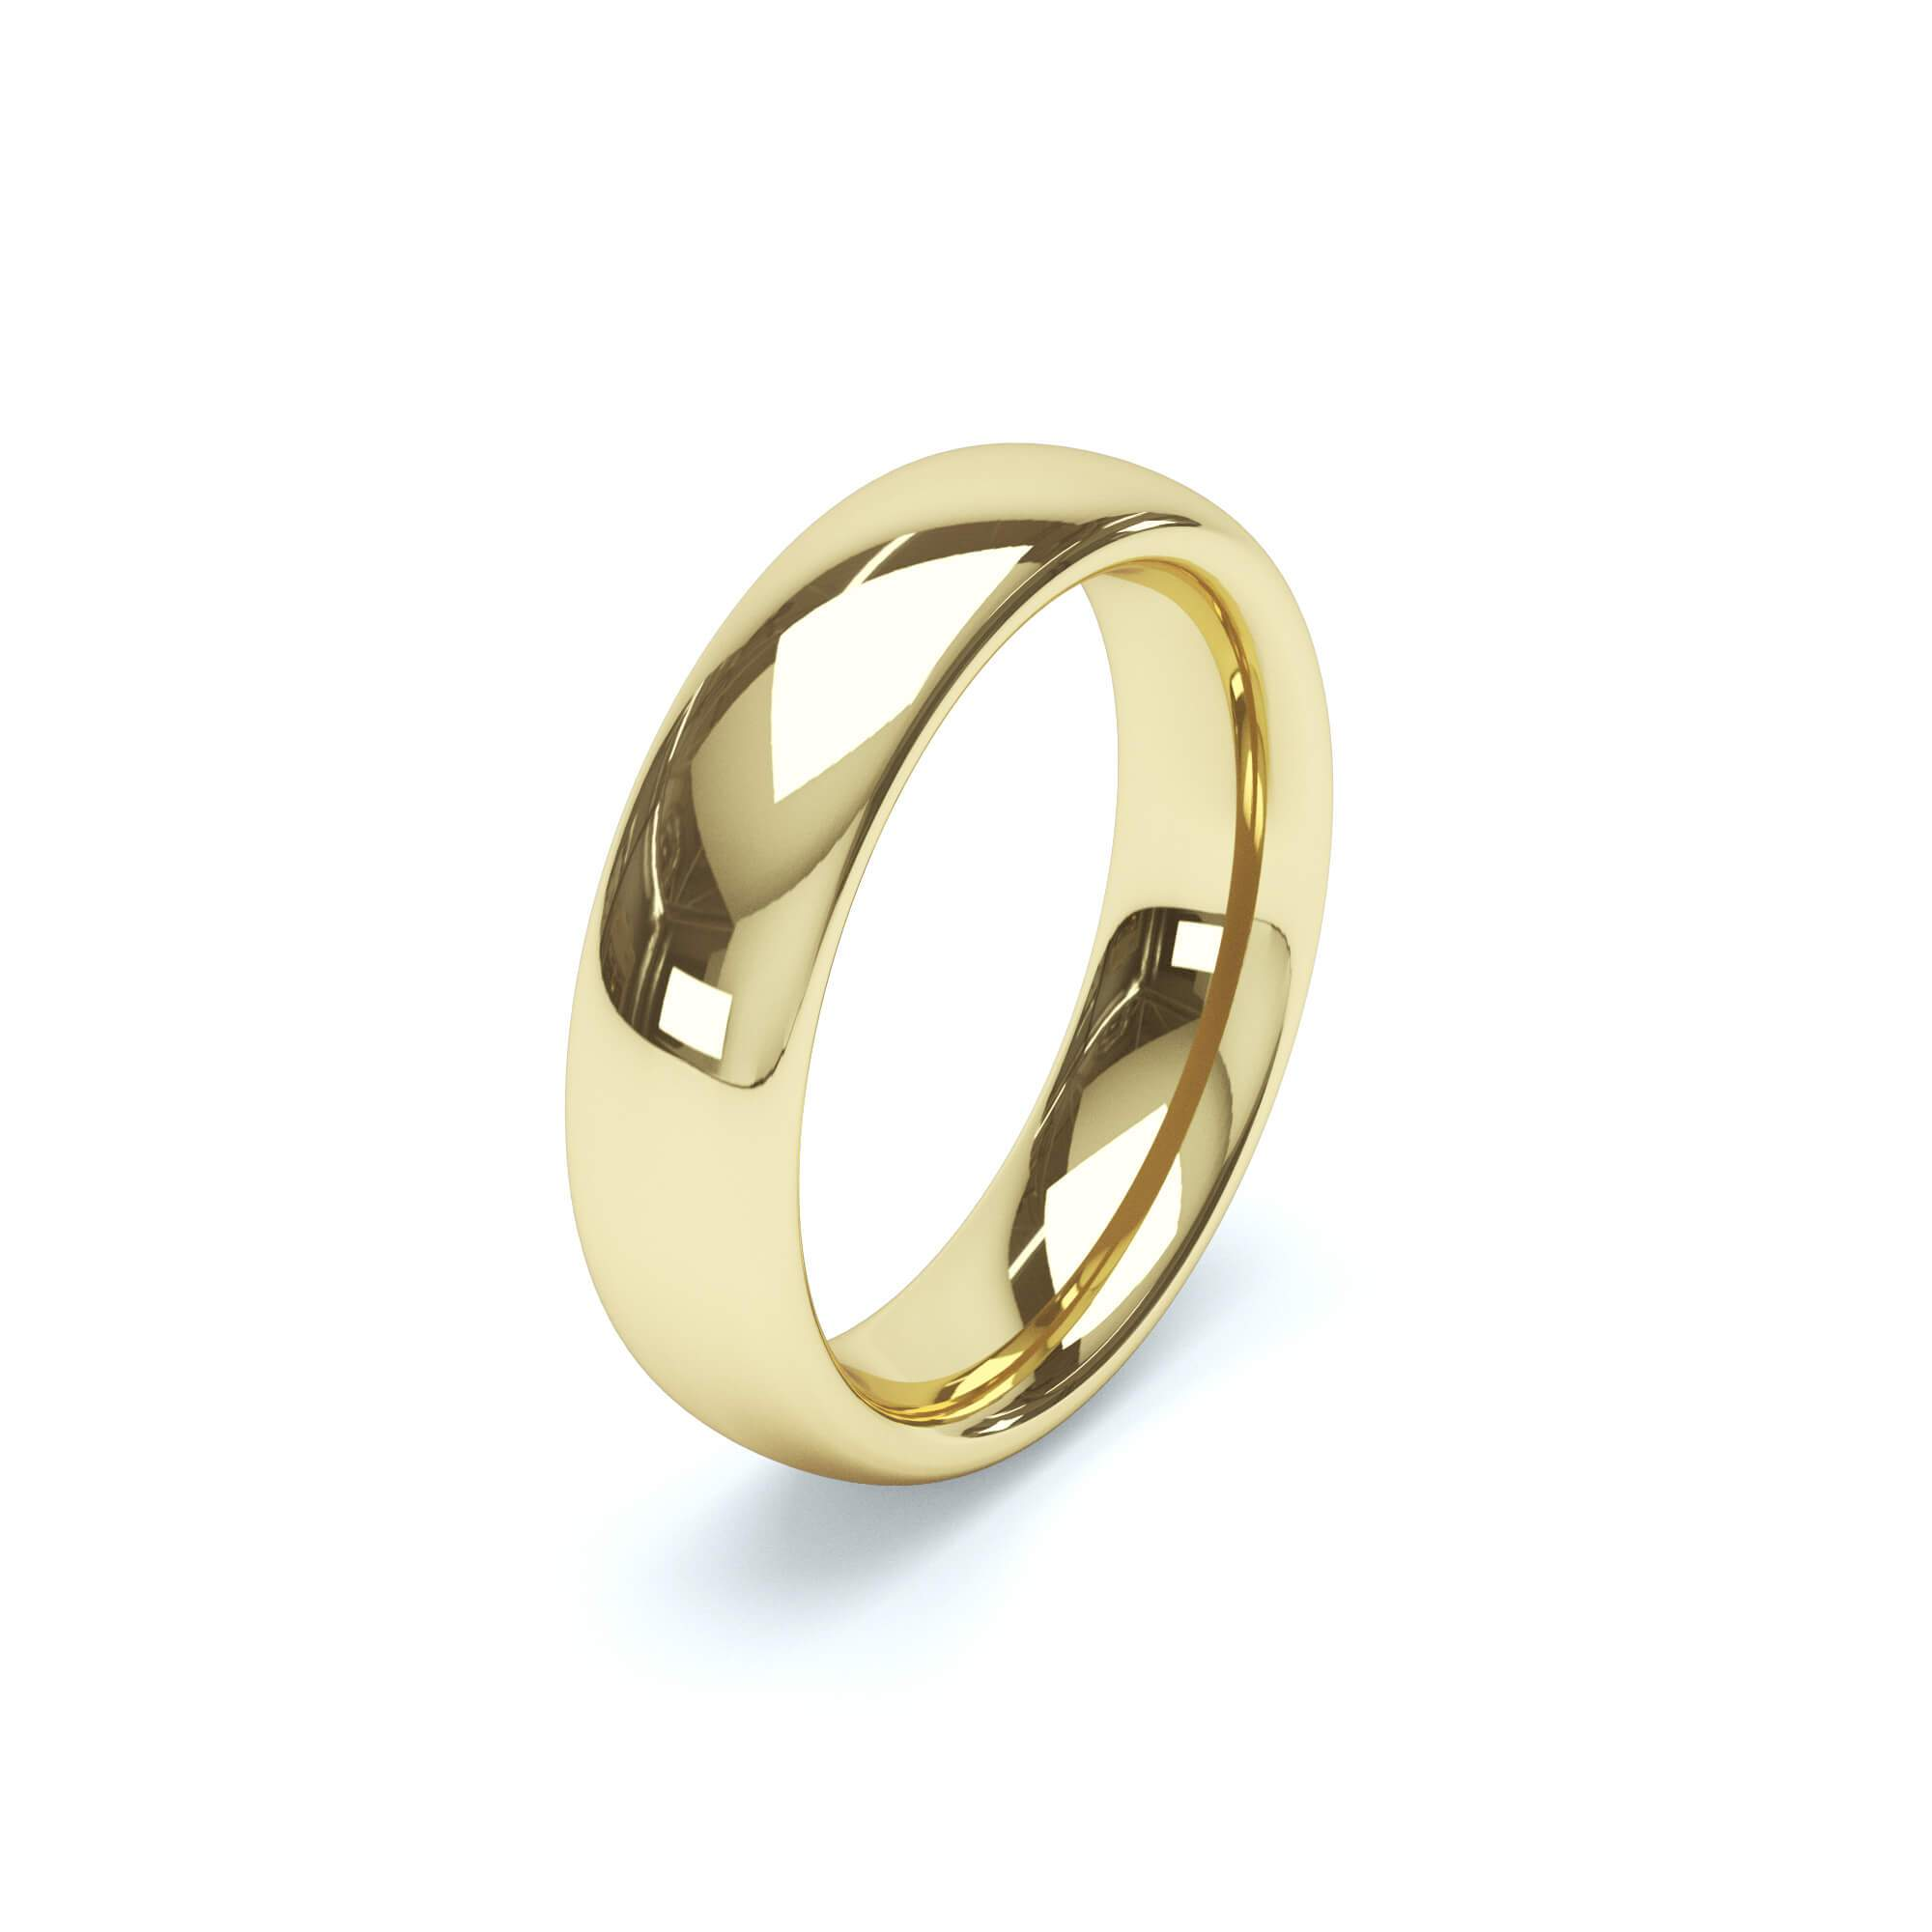 Plain Wedding Band Regular Court Profile 18k Yellow Gold Wedding Bands Lily Arkwright